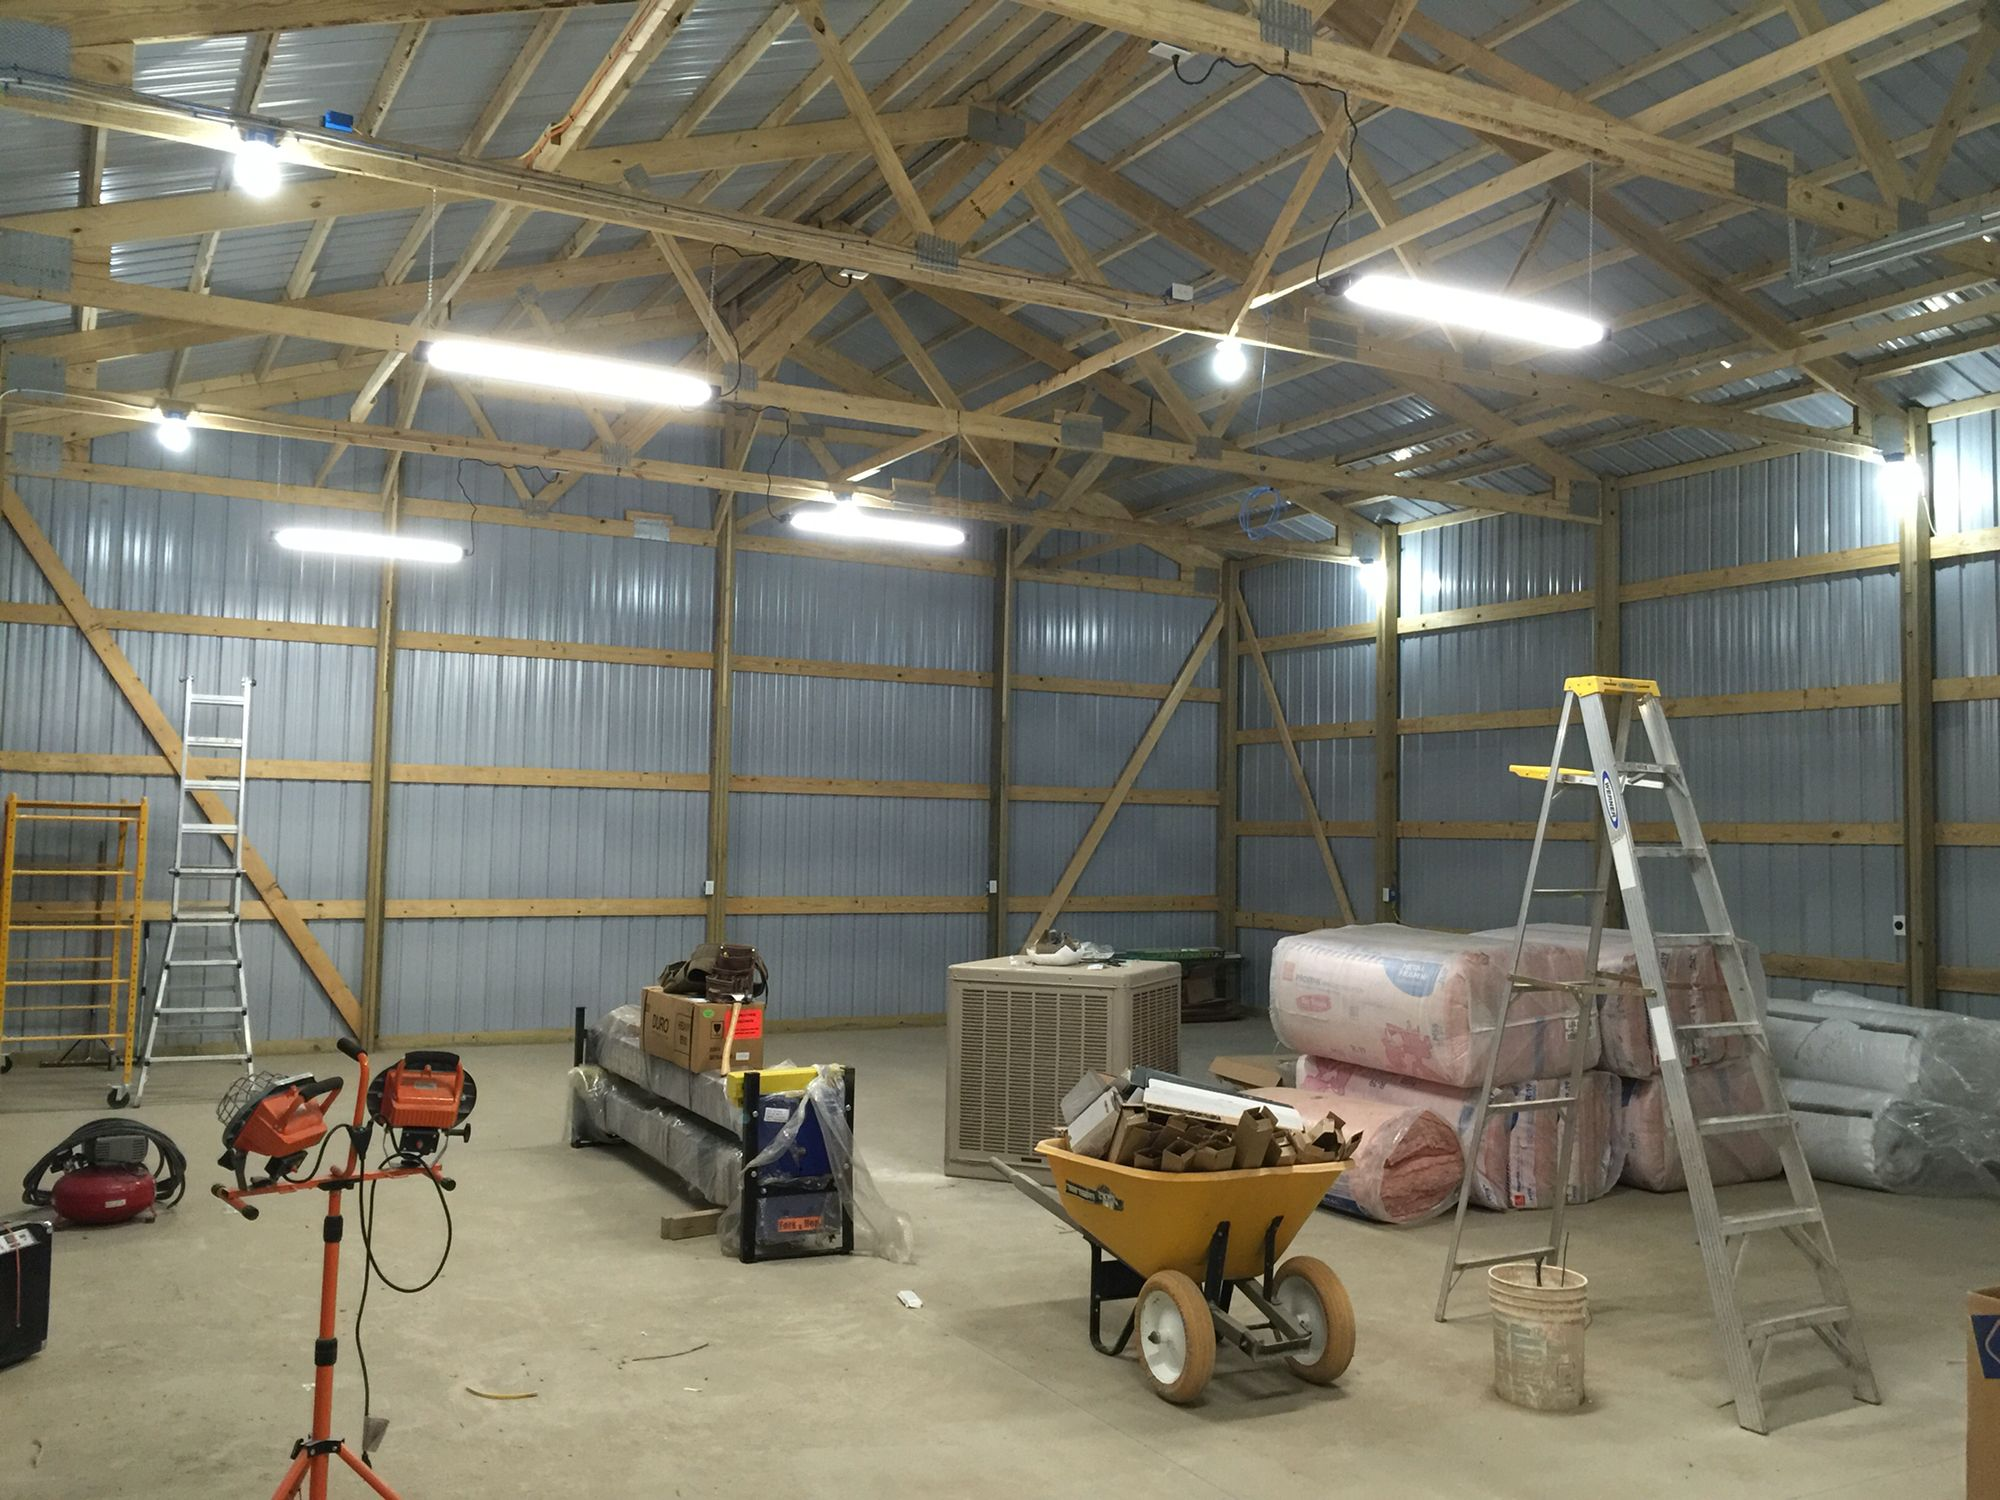 Electrical finished and ready to insulate the pole barn